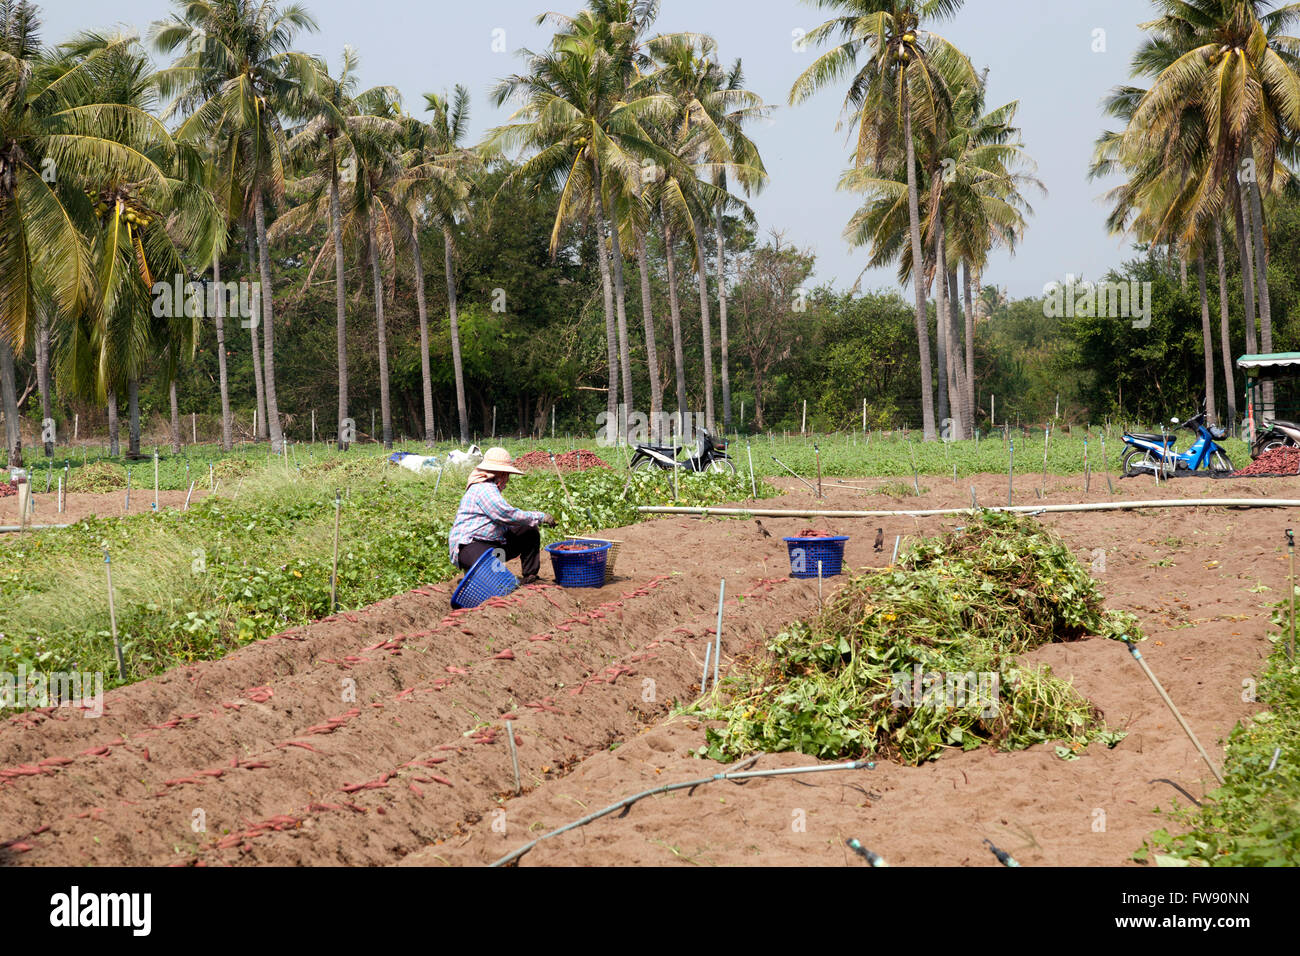 The harvesting of sweet potatoes (Ipomea batatas), in the Prachuap Khiri Khan province (Thailand). La récolte - Stock Image